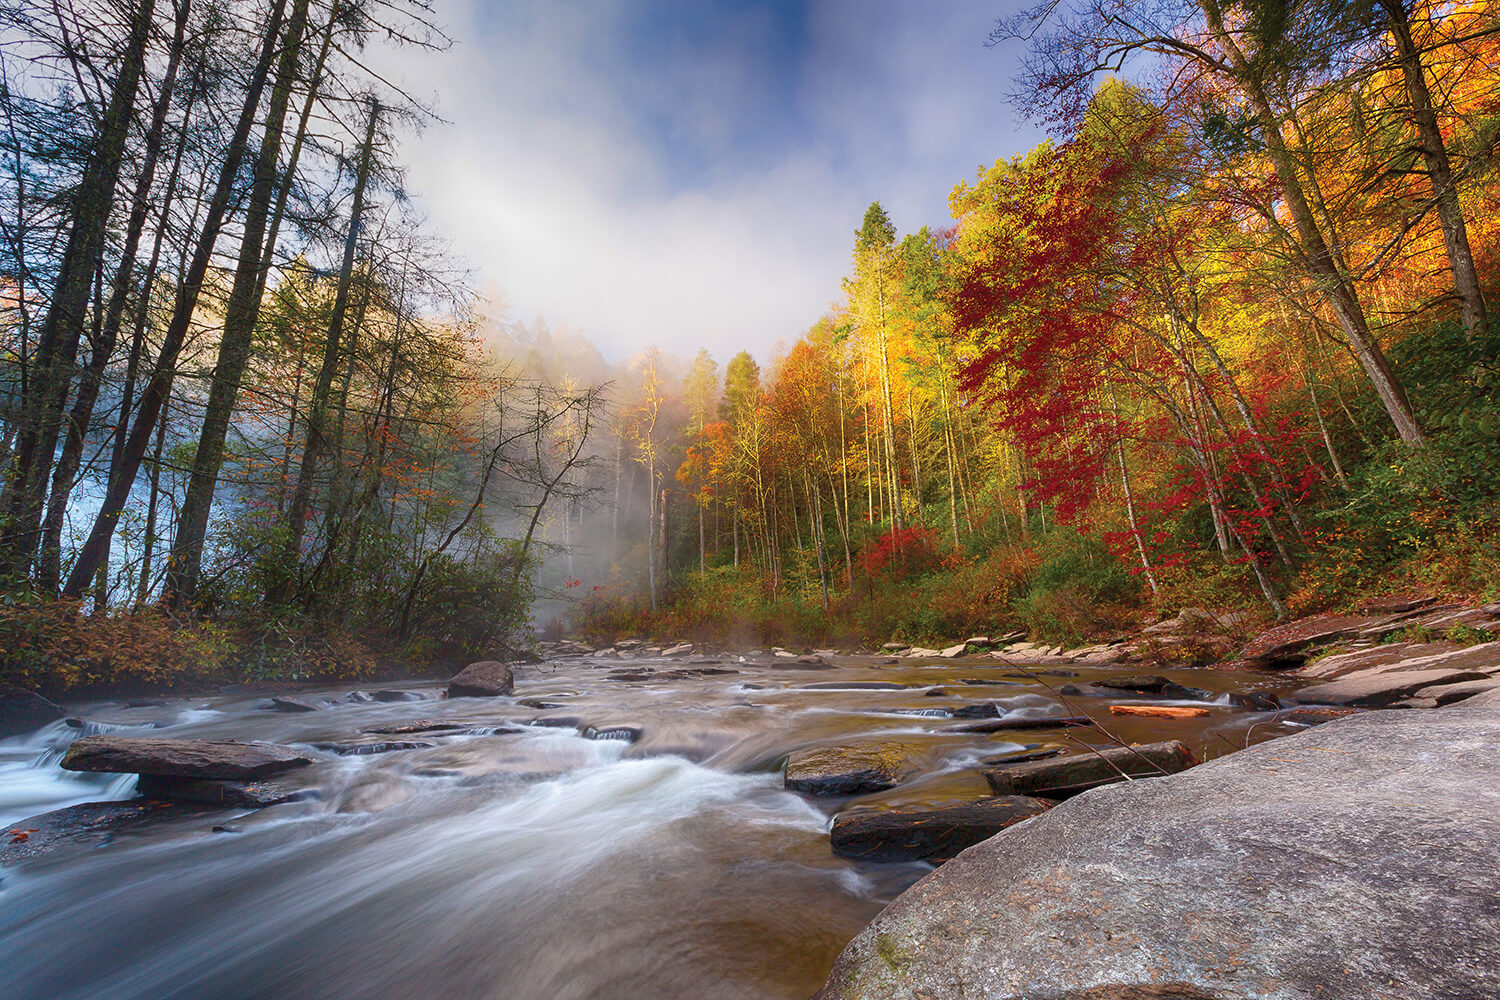 A misty autumn morning at High Falls in Transylvania County, where the Little River nears a 125-foot drop. Photograph by Brendan Arcuri, dezignhorizon.com